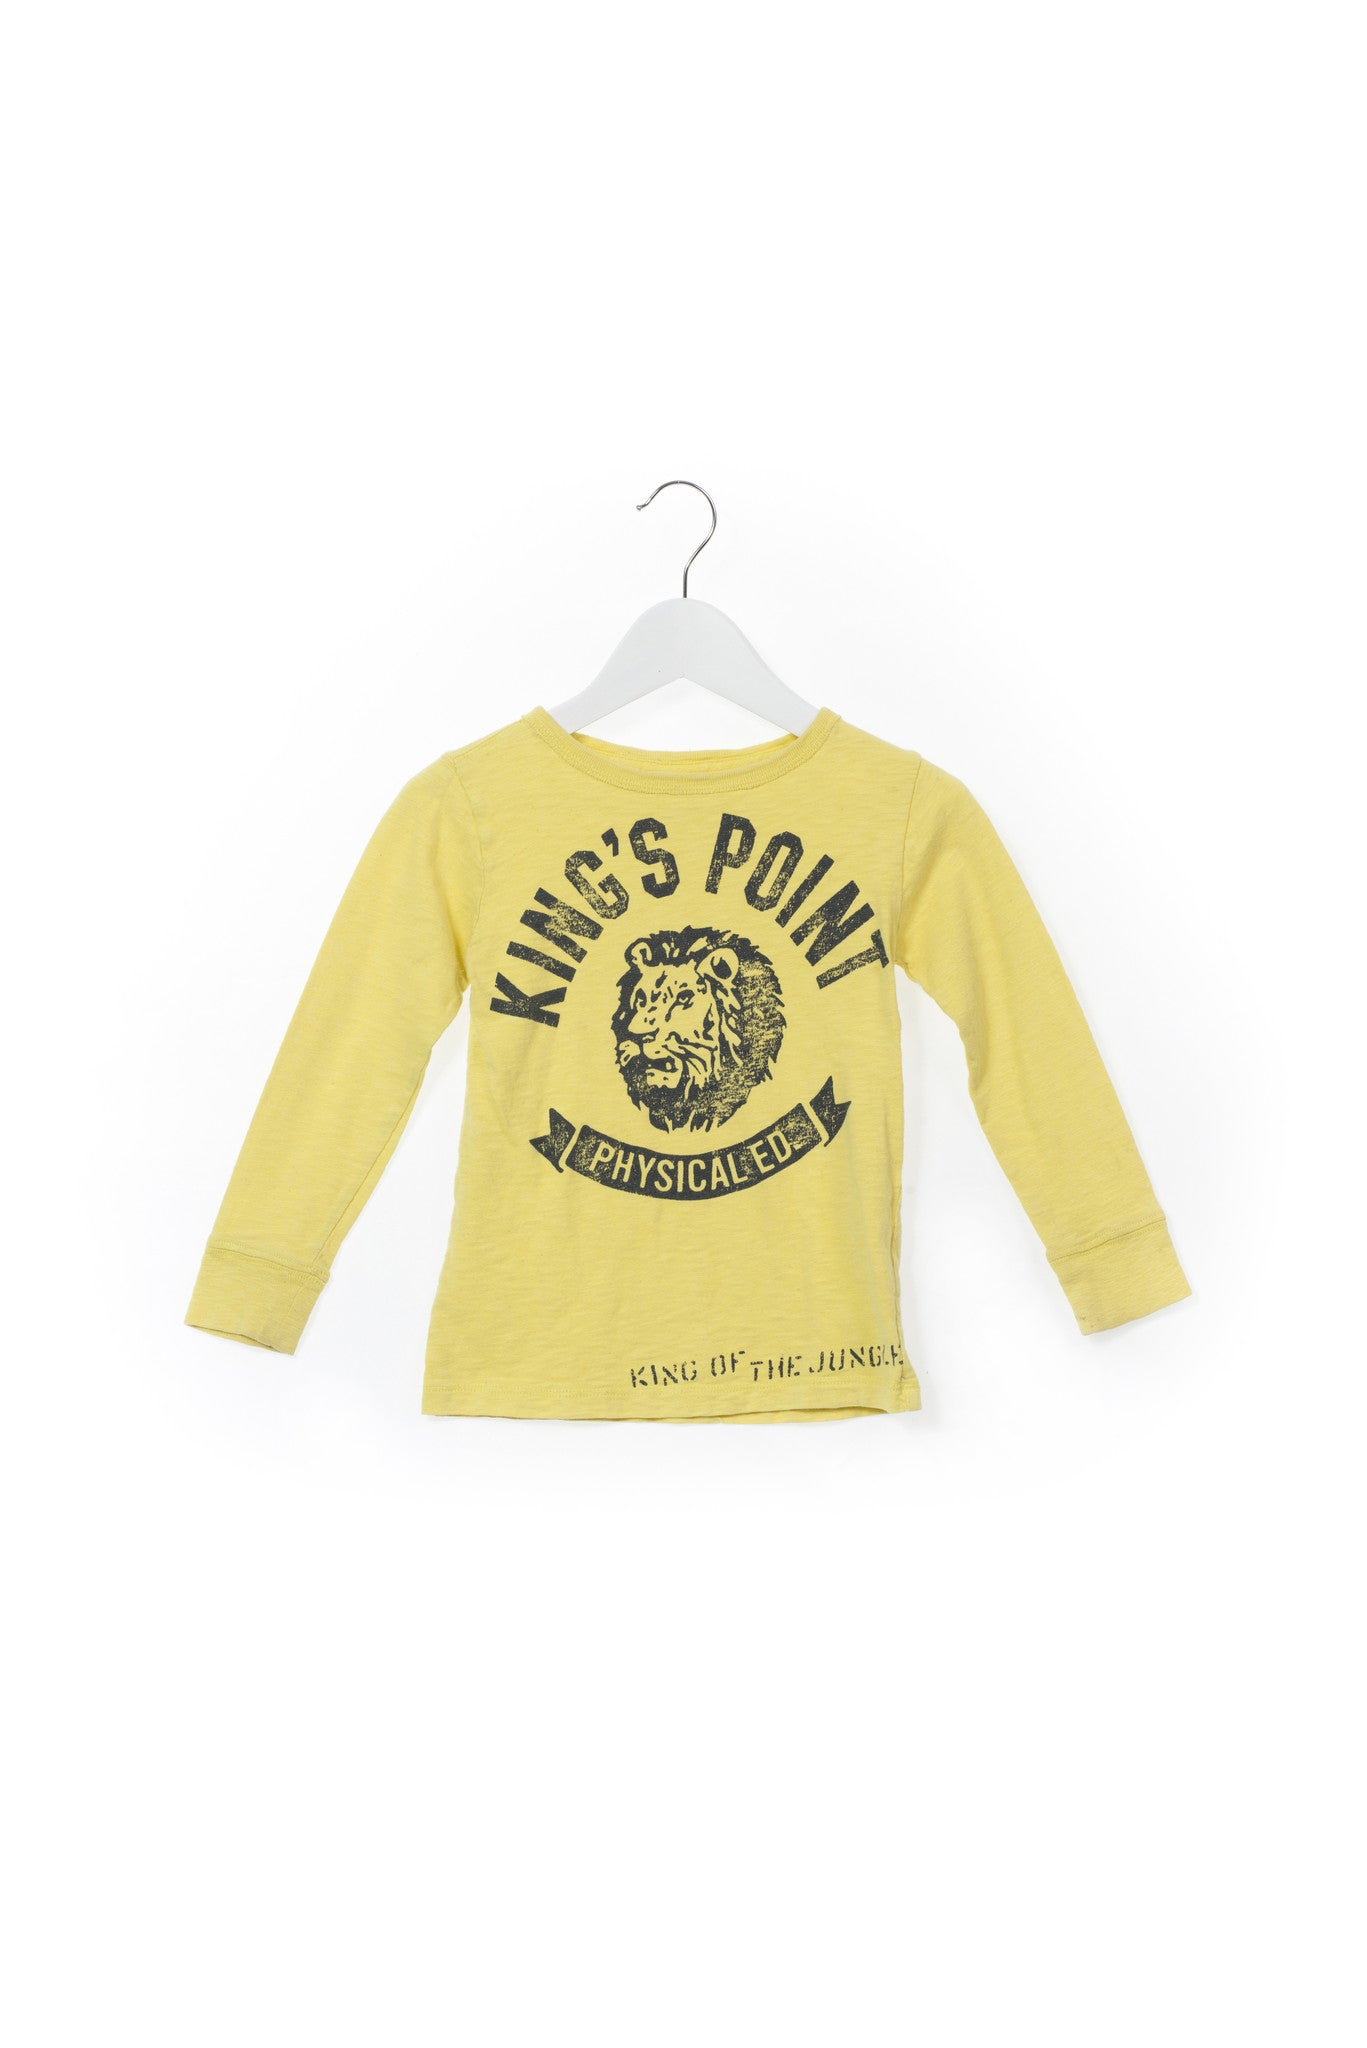 10001036 Crewcuts Kids~Top 3T at Retykle